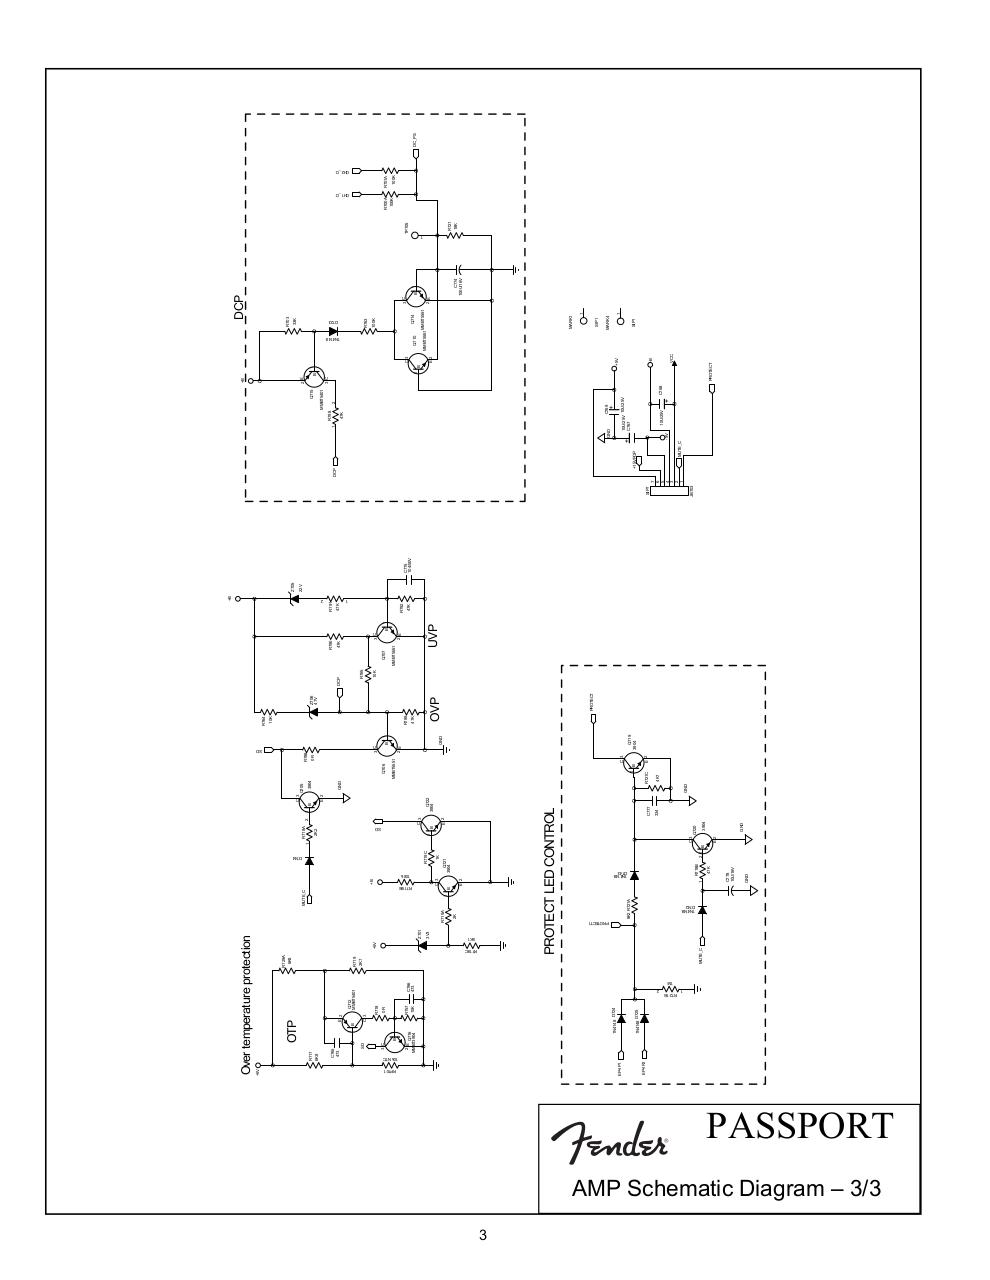 Passport 300 Pro Service Diagrams.pdf - page 4/29